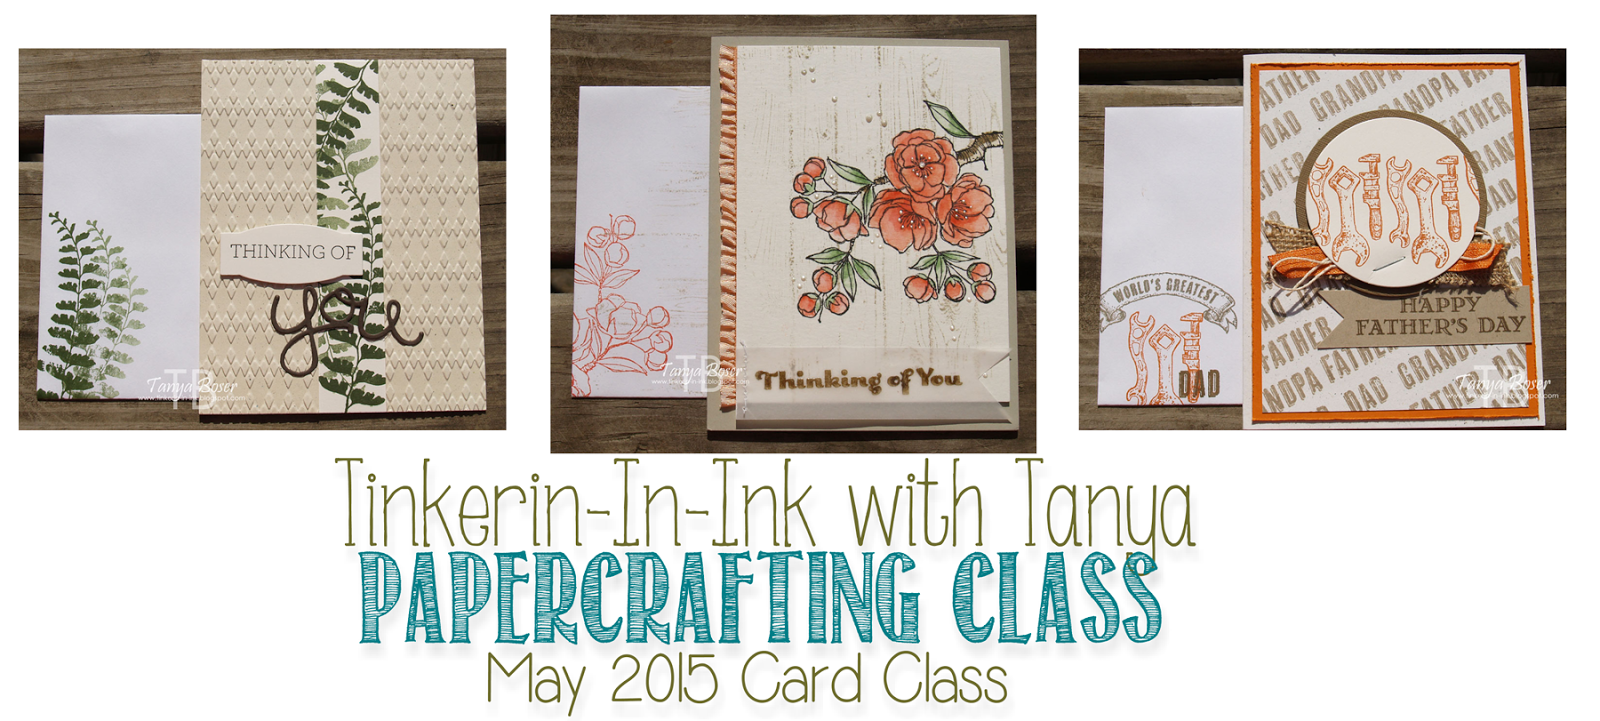 http://tinkerin-in-ink.blogspot.com/p/classes.html